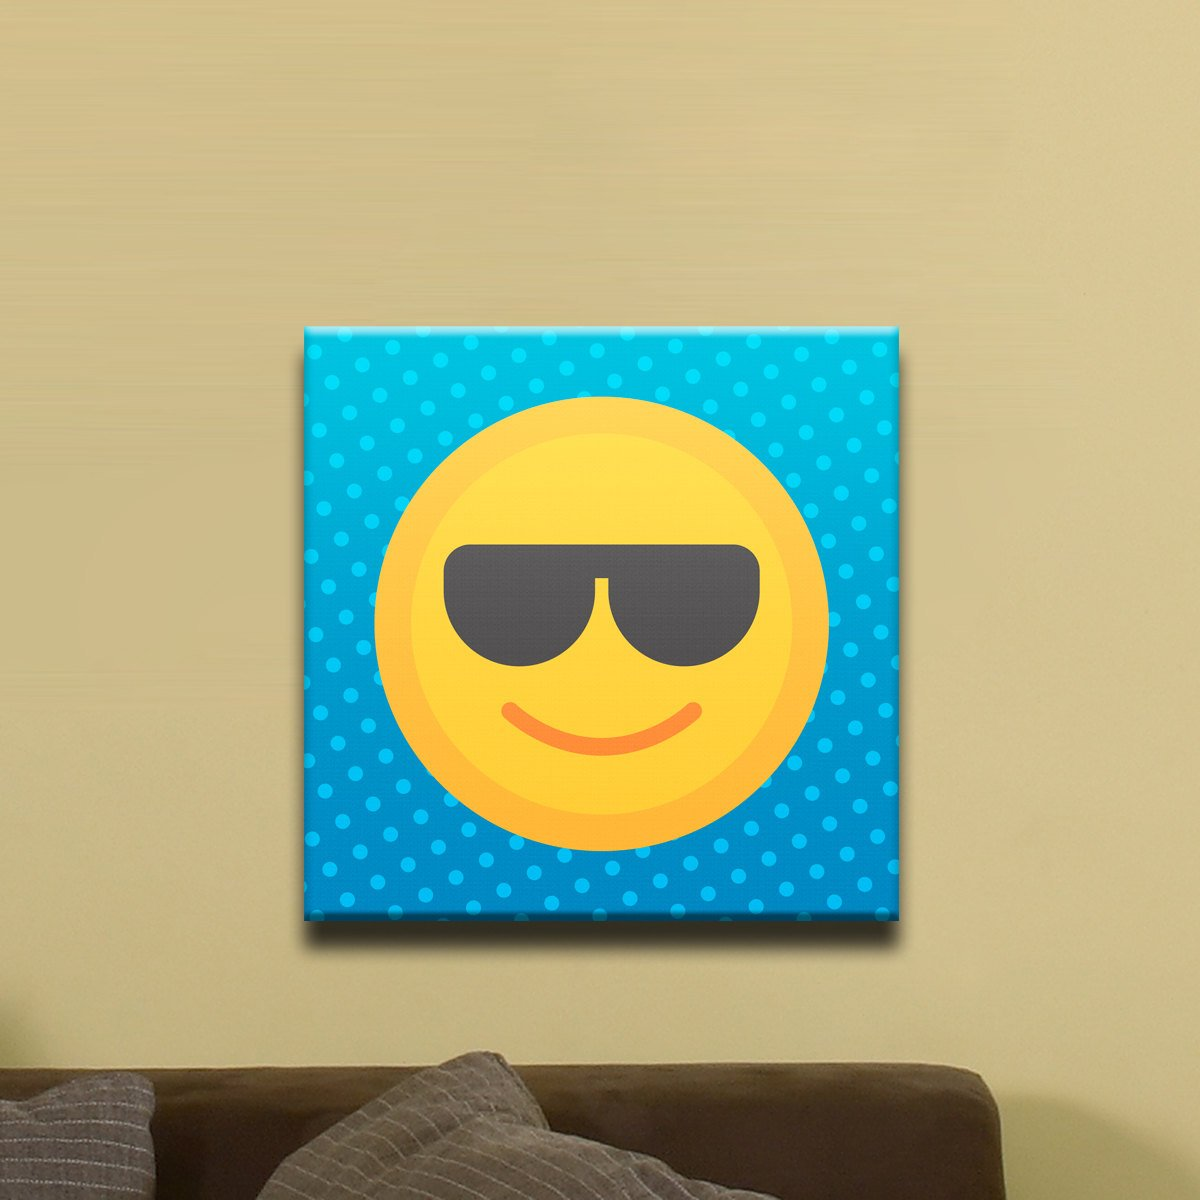 "Sunglasses, Flat Shaded Smiley Face Emoji (12"" x 12"") - Canvas Wrap Print"